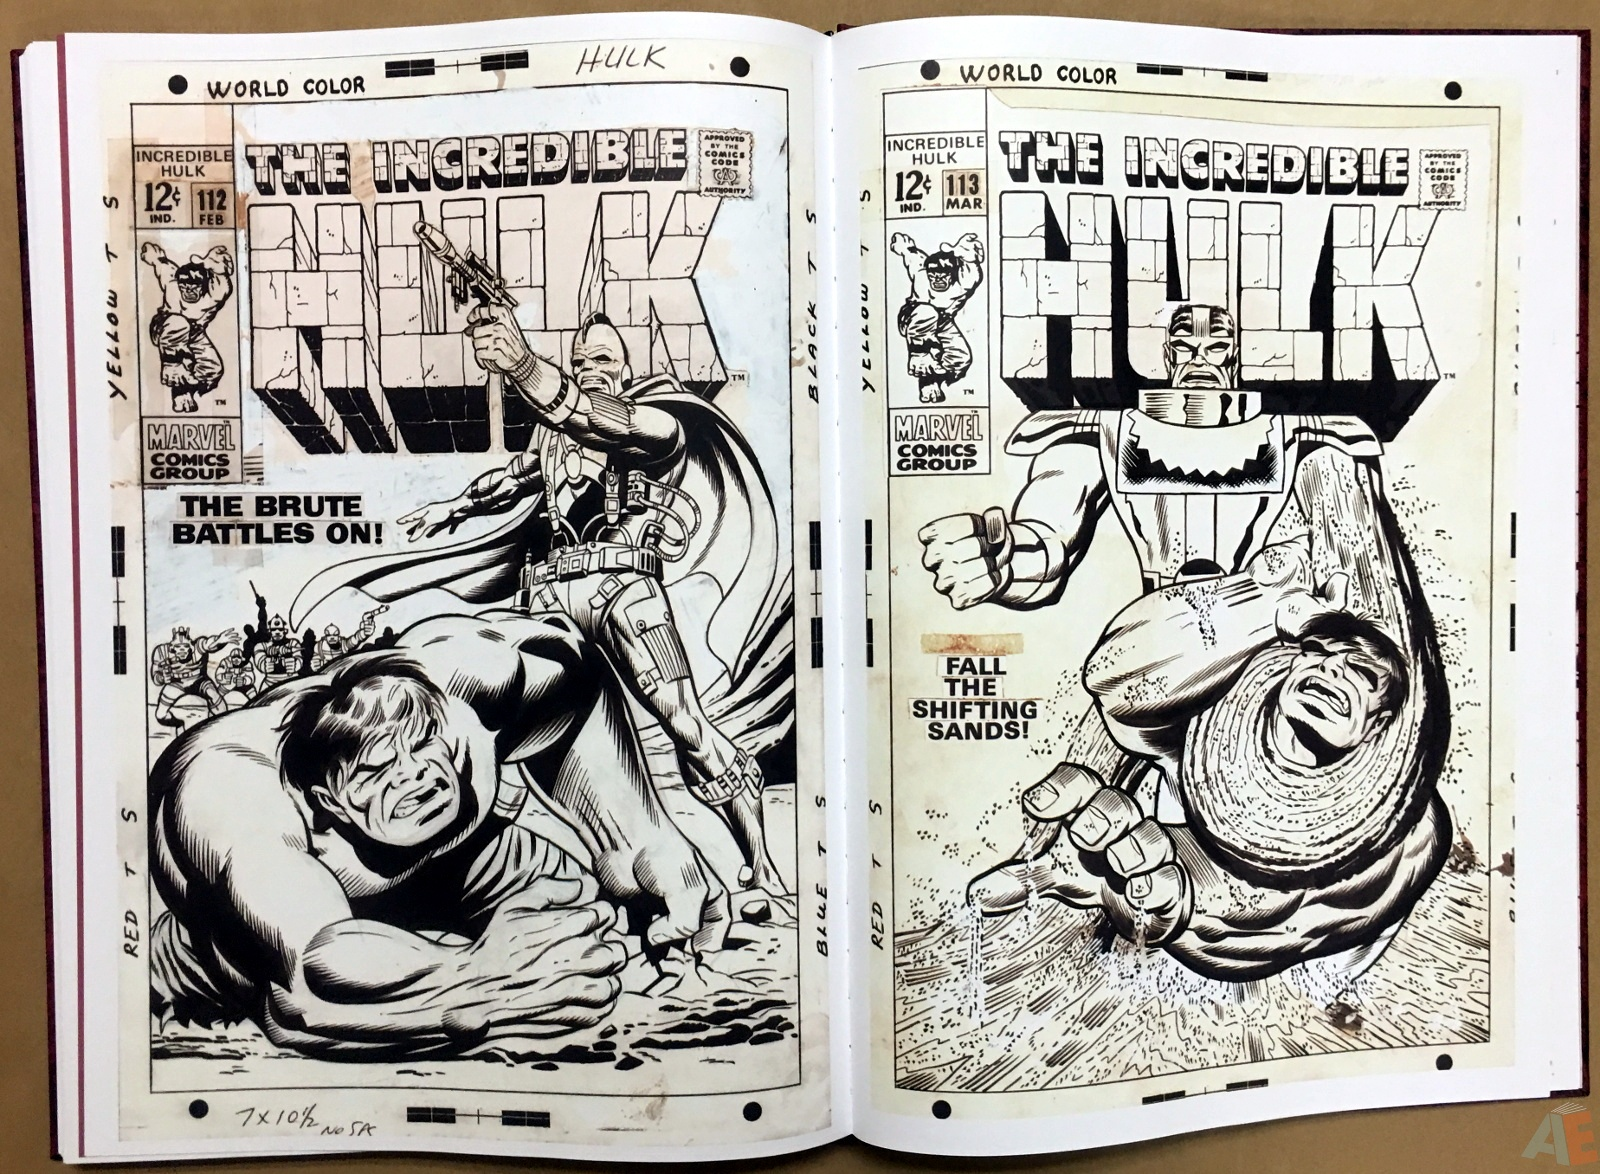 Herb Trimpe's The Incredible Hulk Artist's Edition 46